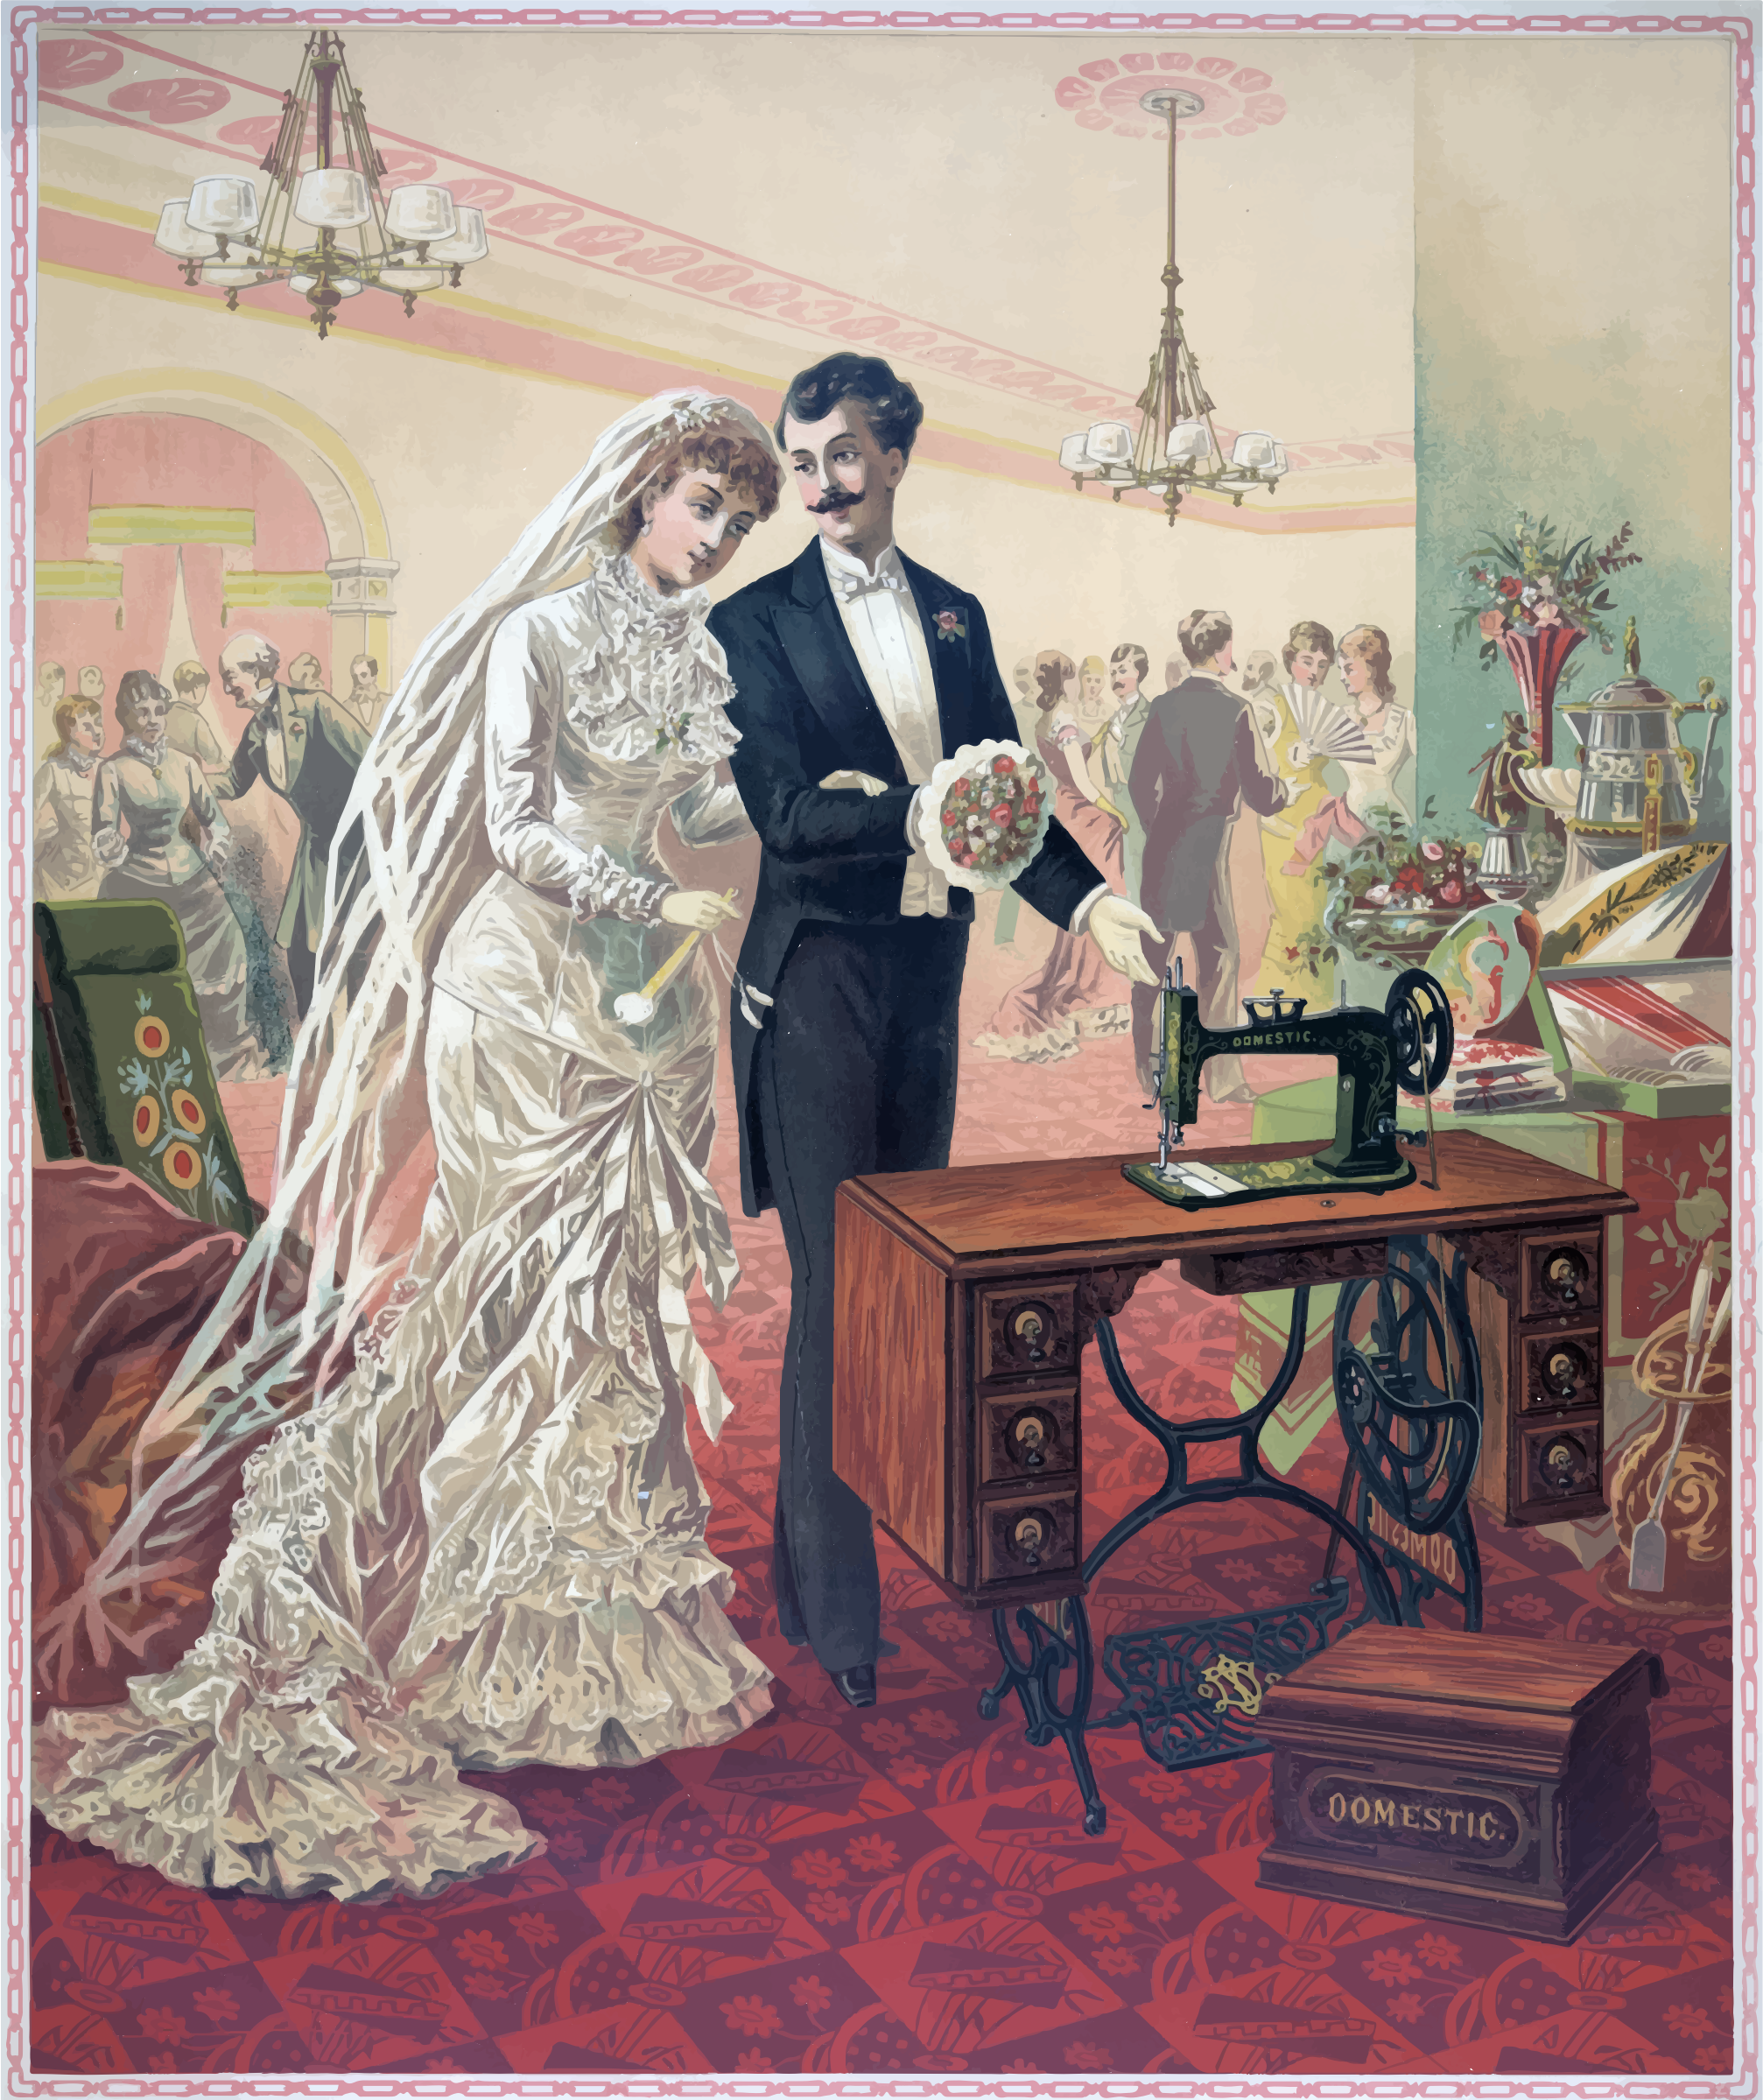 Vintage Bride And Groom Illustration by GDJ